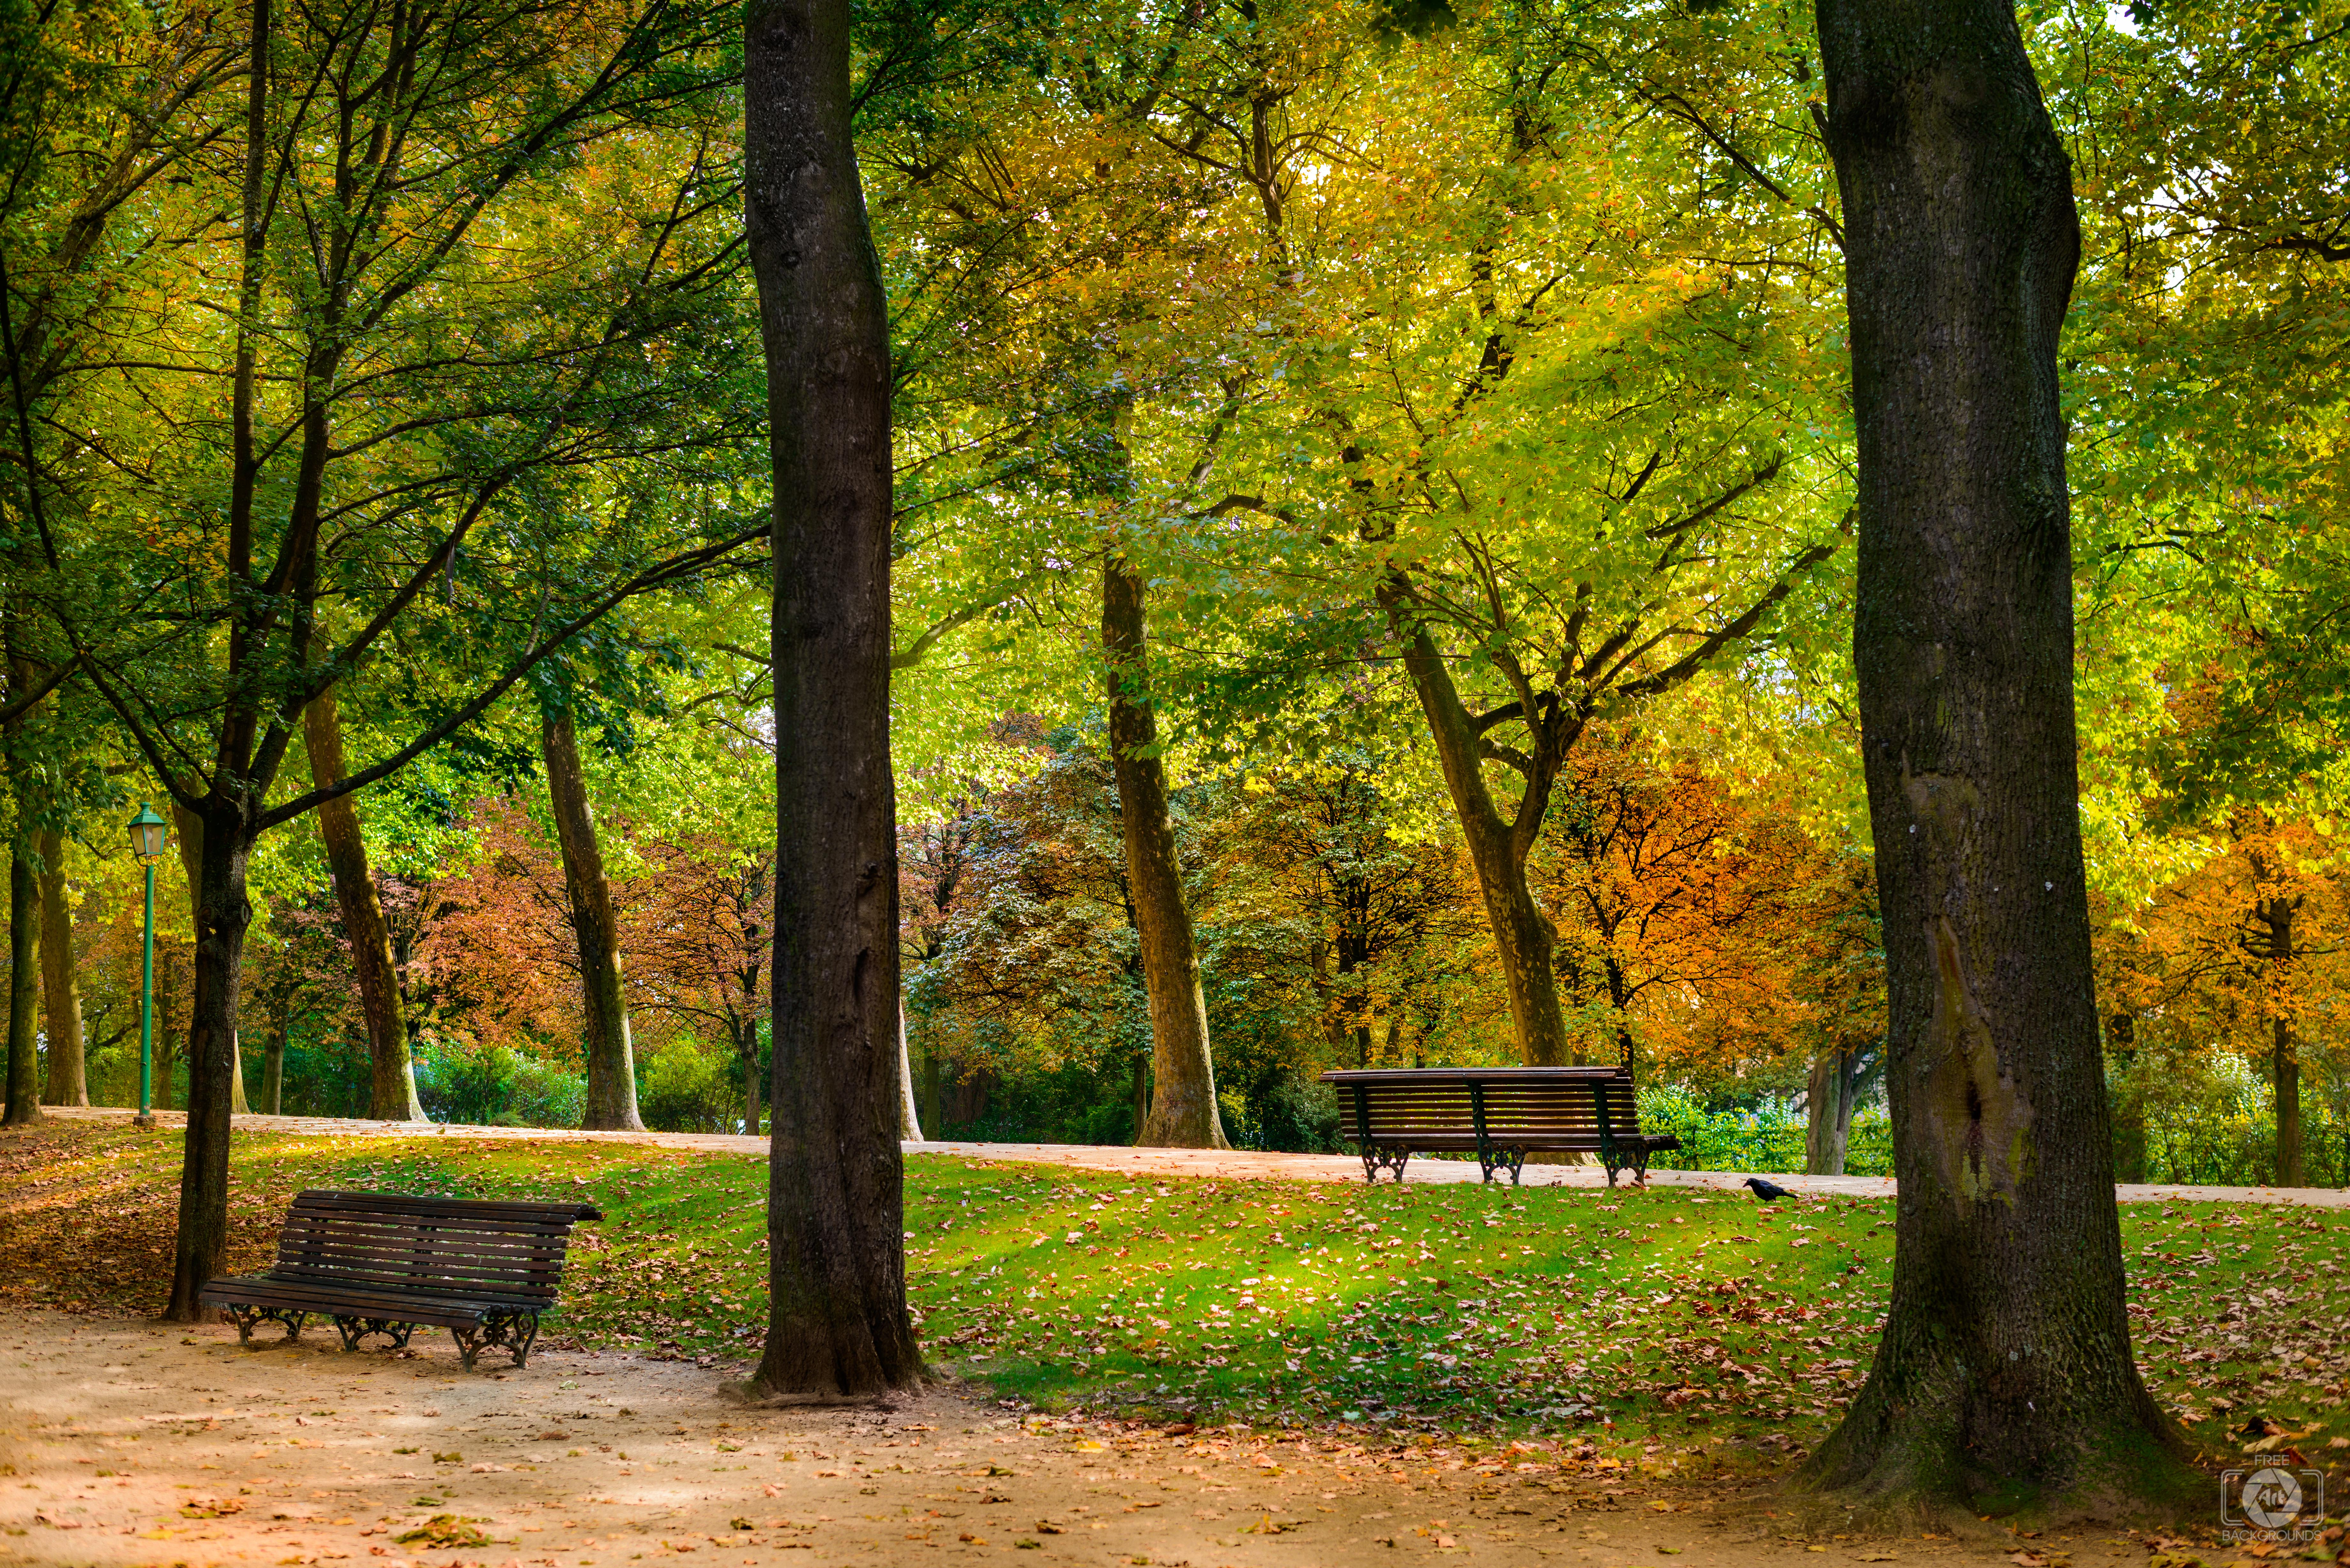 High Resolution Wallpaper Fall Leaves Autumn In The Park Background Freeartbackgrounds Com